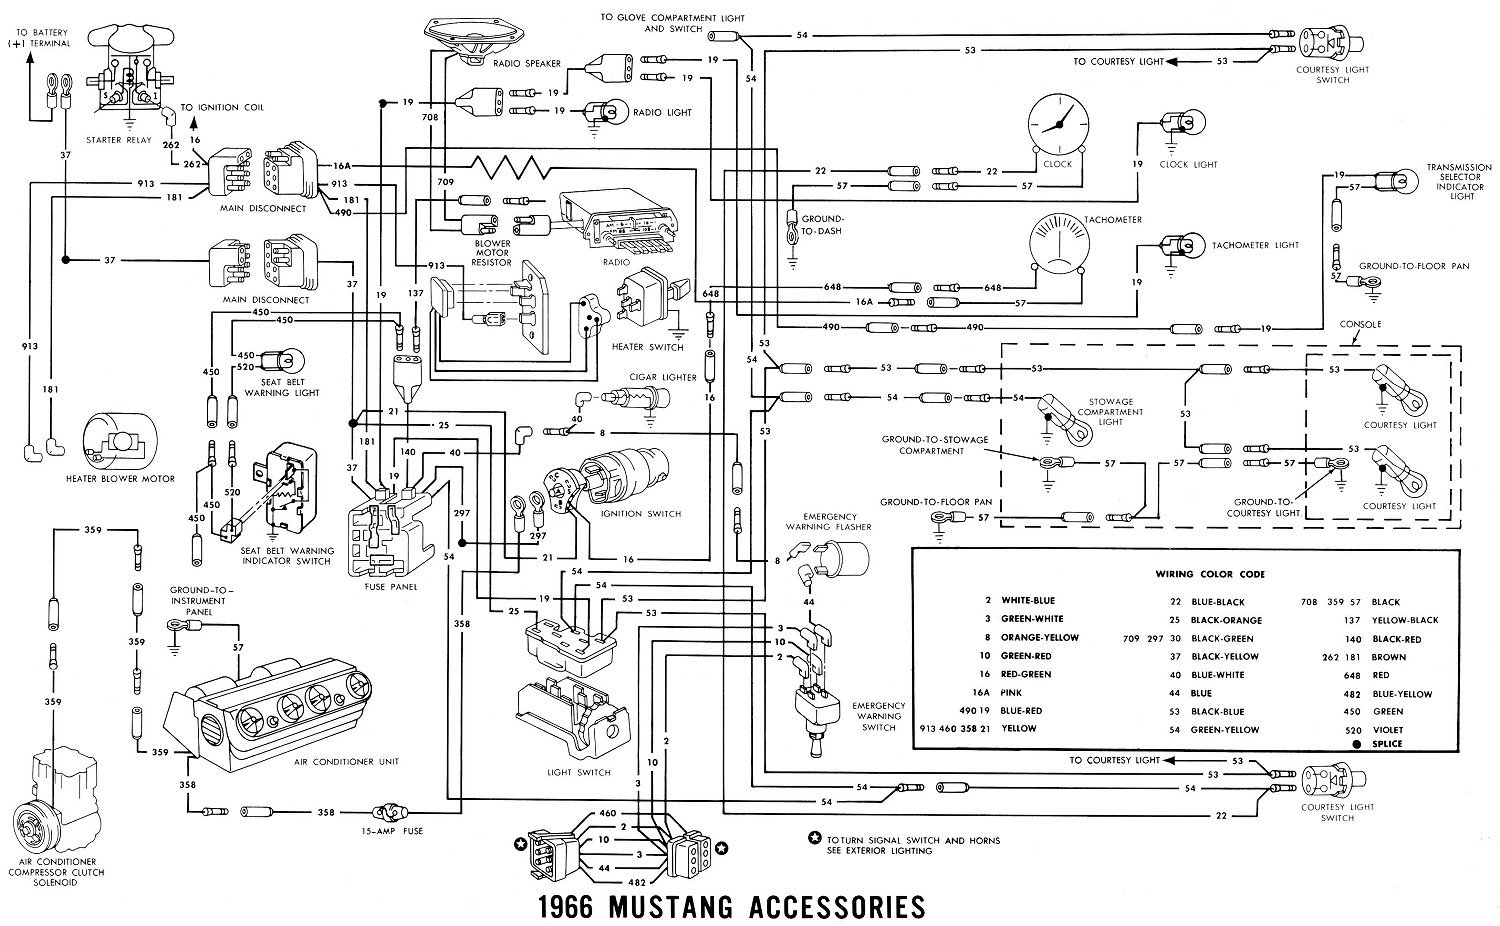 hight resolution of 1966 mustang fuse diagram wiring diagram sample 66 mustang fuse diagram 1966 mustang fuse diagram wiring